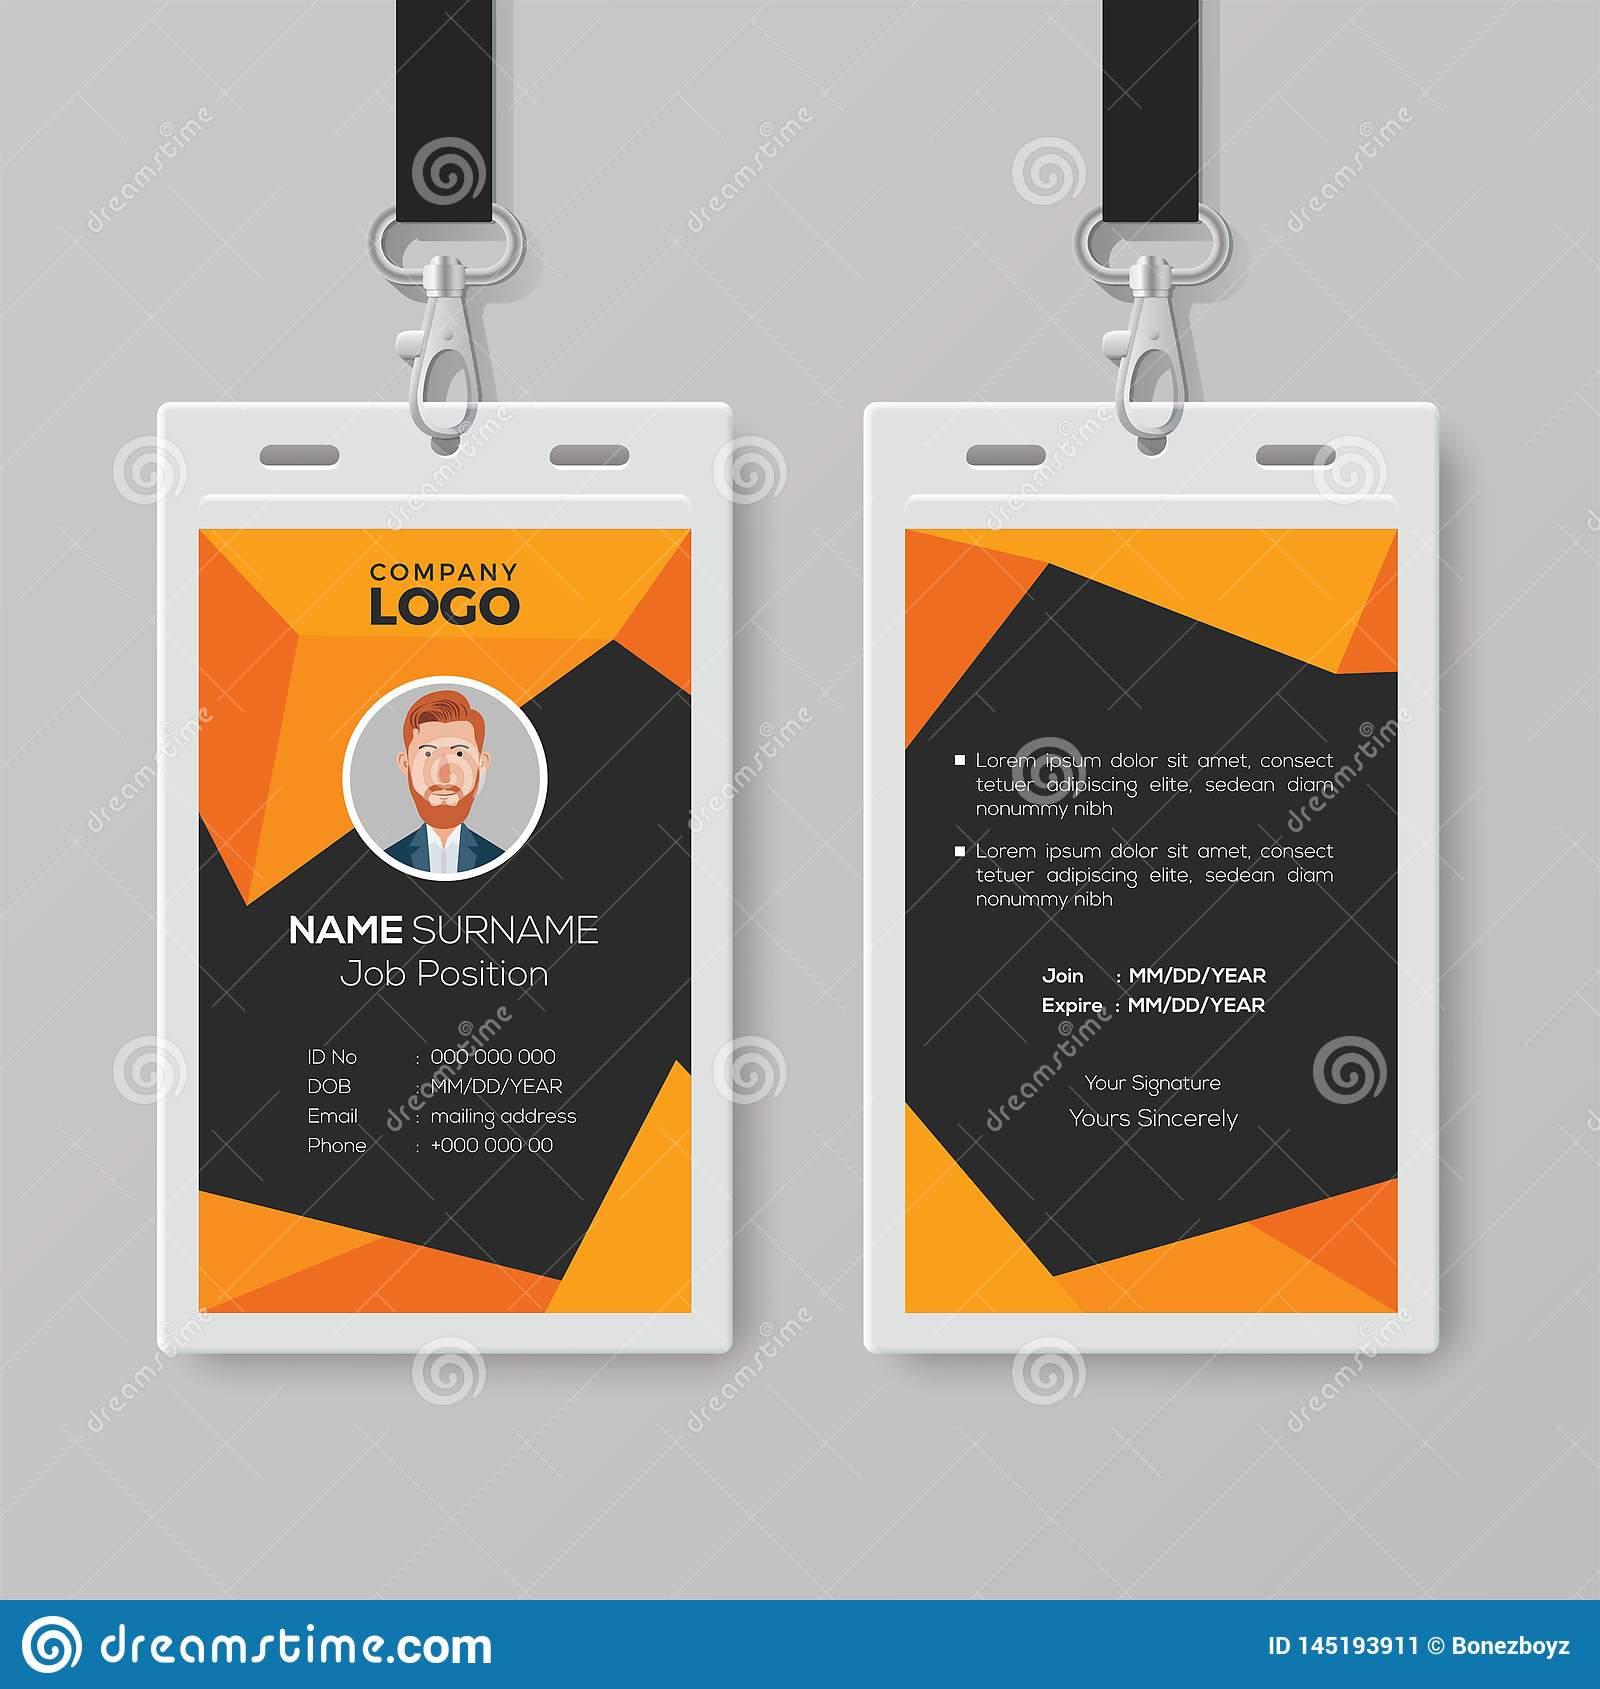 Abstract ID Card Template With Geometric Style Stock Vector In Conference Id Card Template